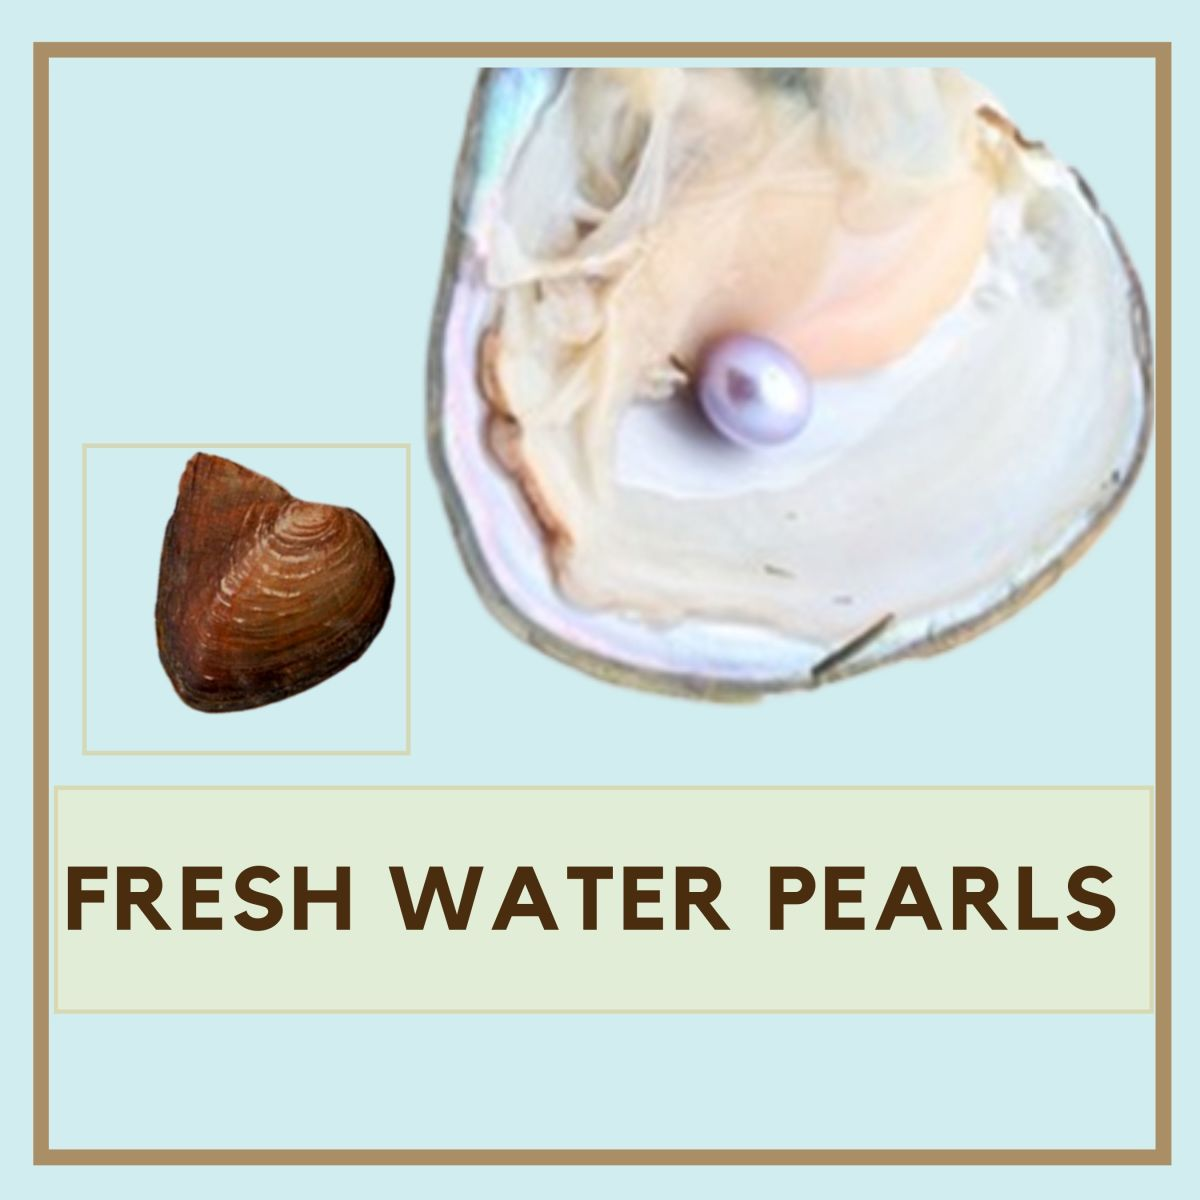 Freshwater pearls are cheaper and more widely available than their saltwater counterparts.